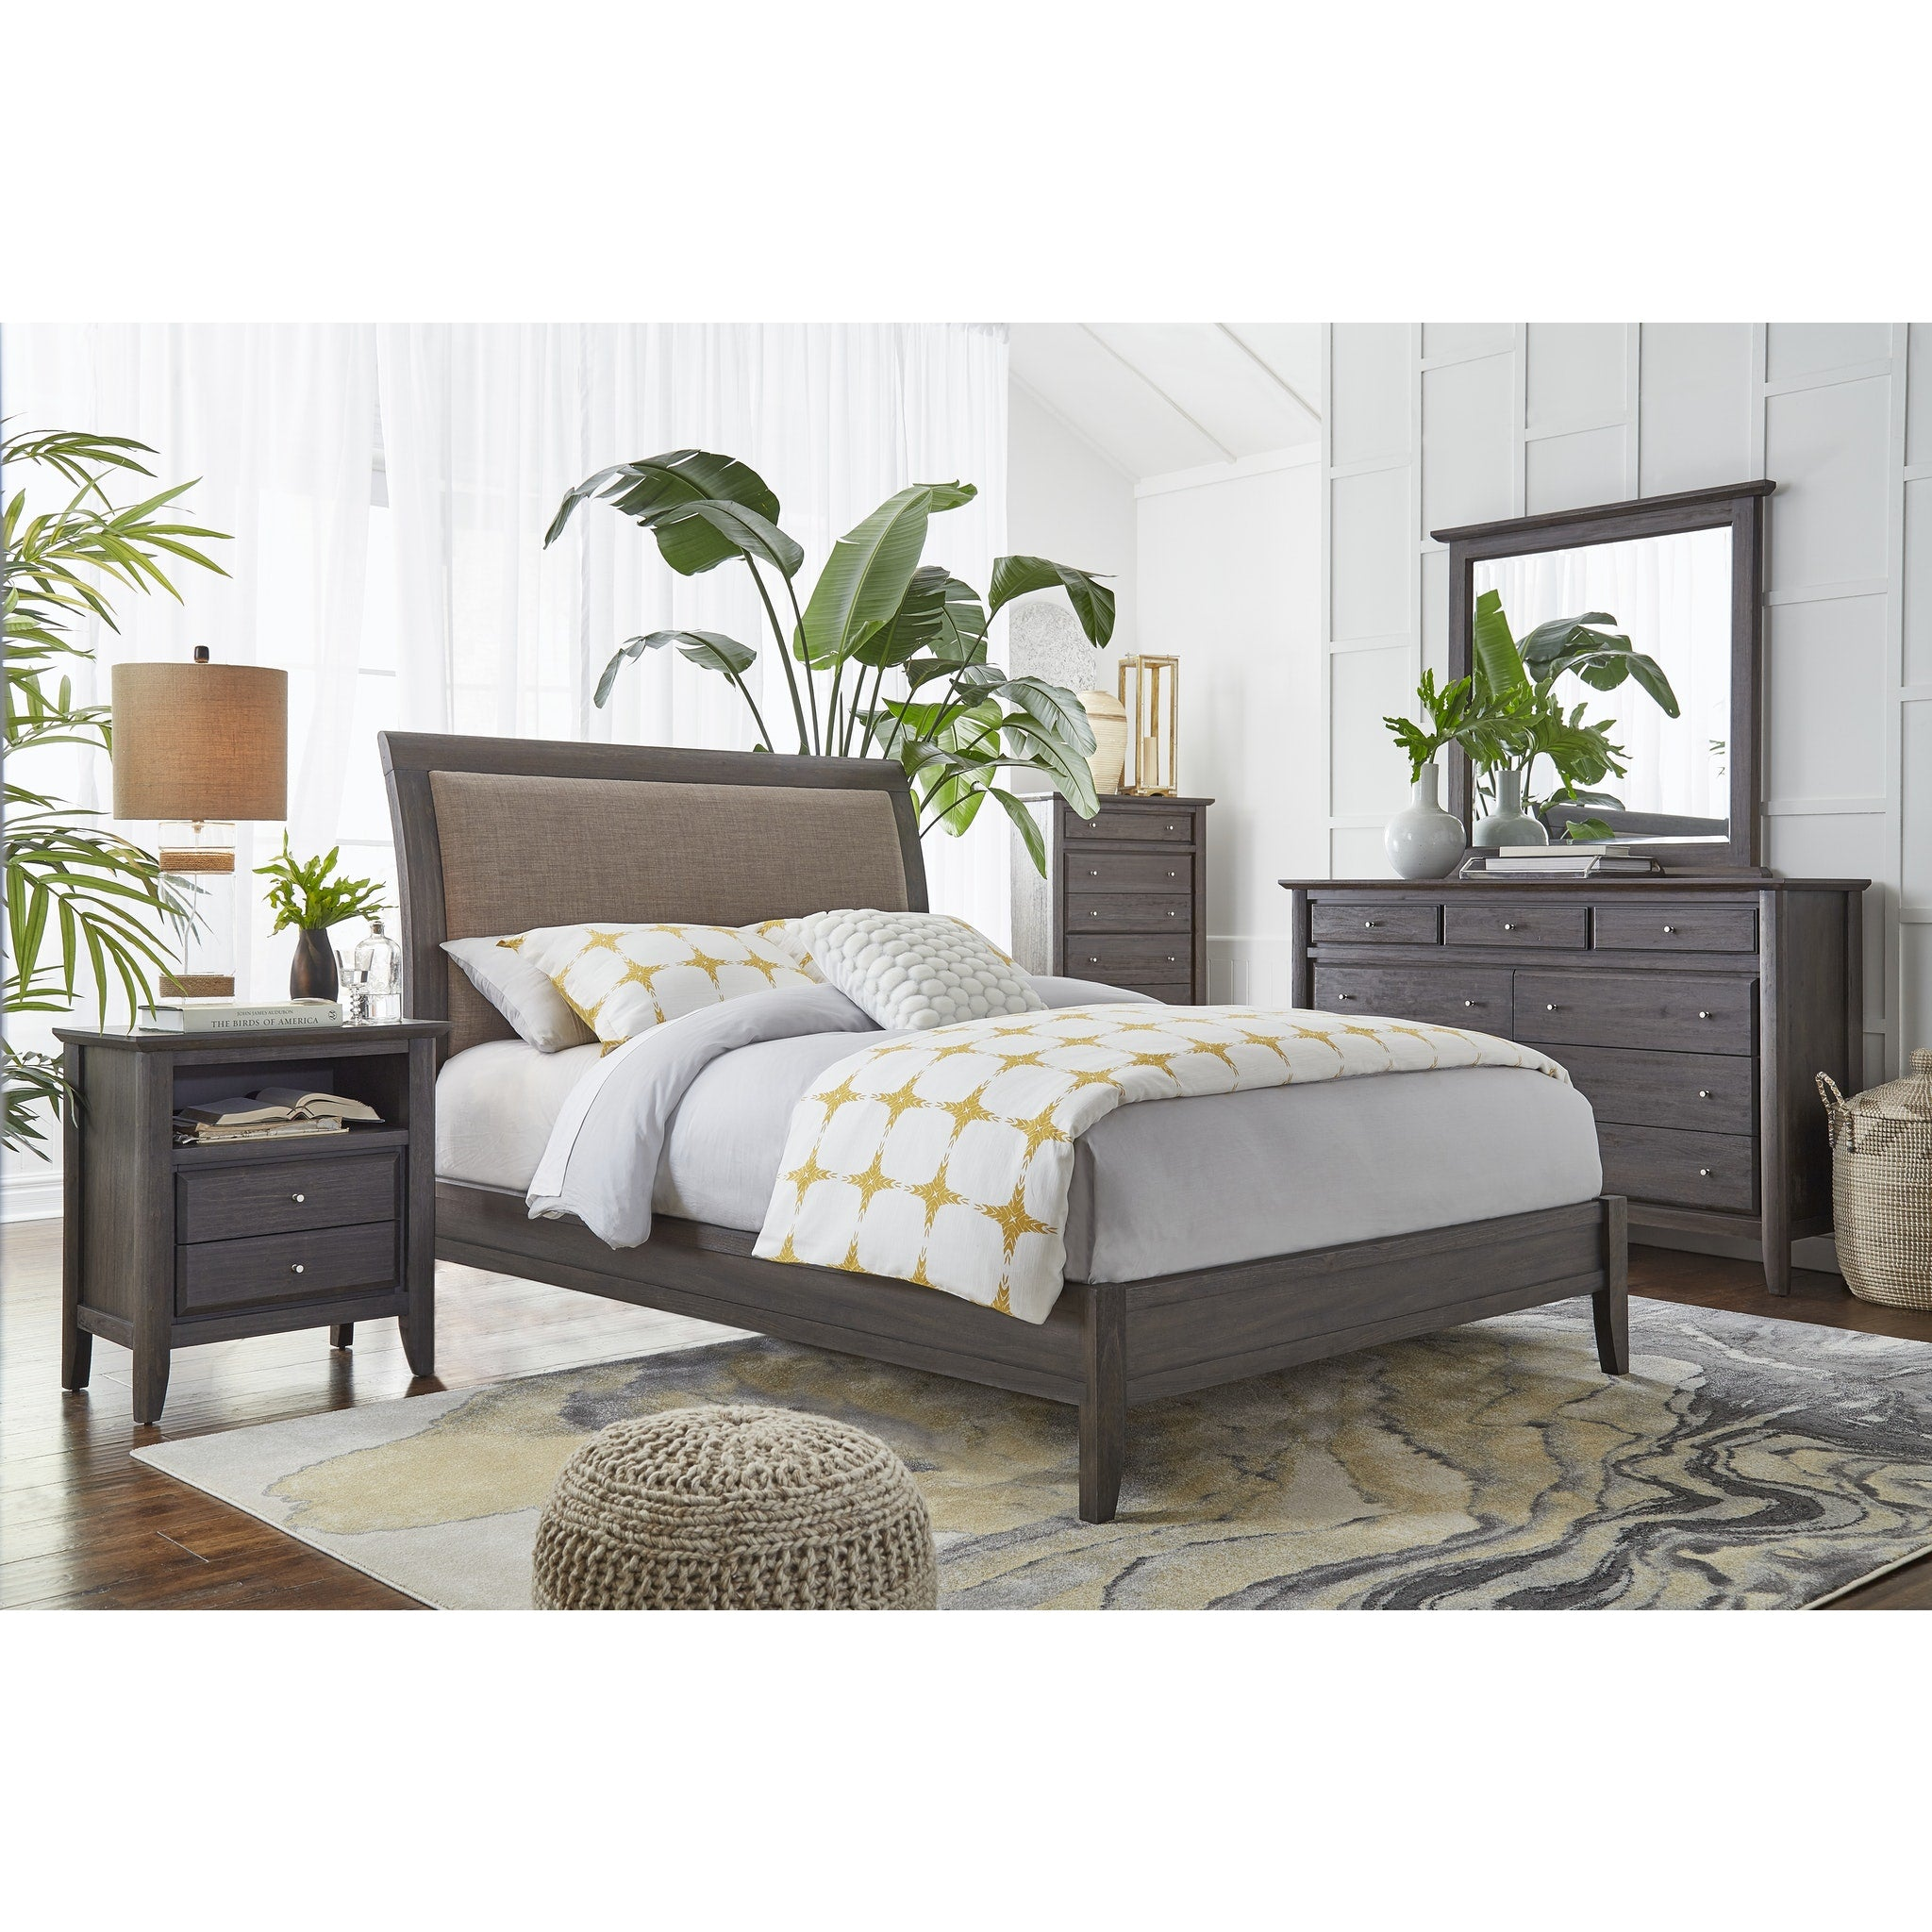 City II California King-size Upholstered Sleigh Bed in Basalt Gray